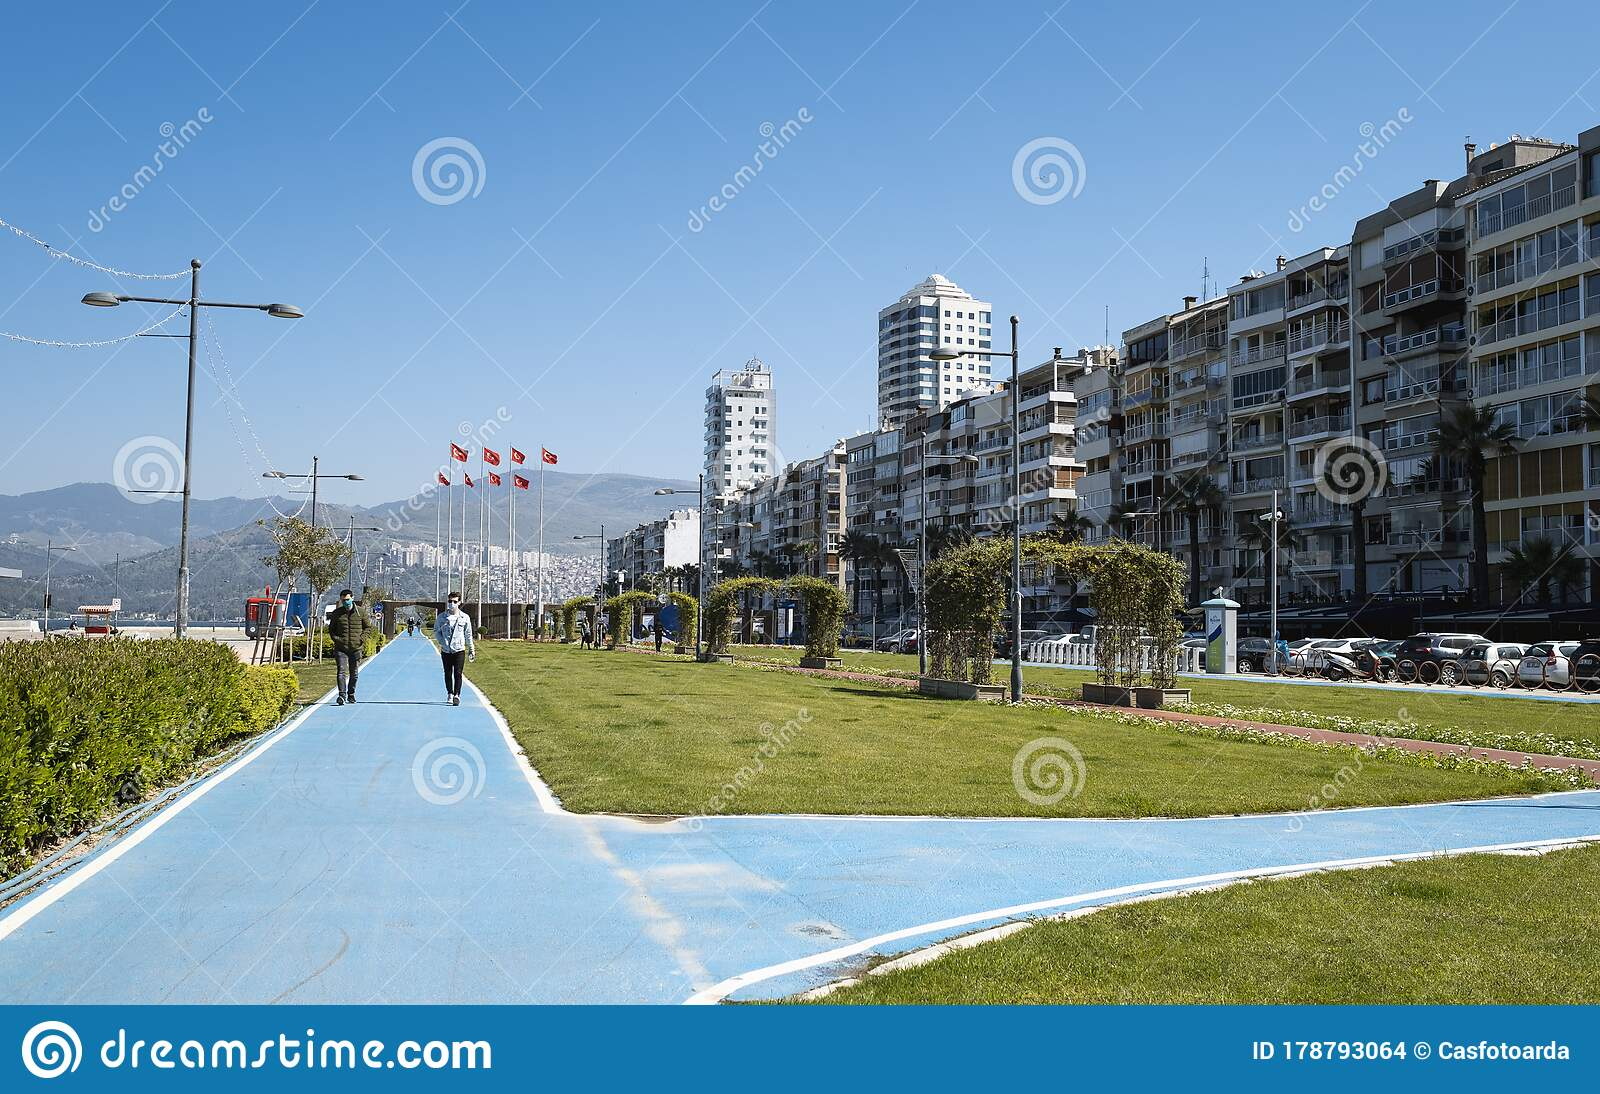 Alsancak Kordon Is Empty Streets Because Of Coronavirus Pandemi People Of Is Izmir Is Staying Home Editorial Stock Image Image Of Architecture 2020 178793064